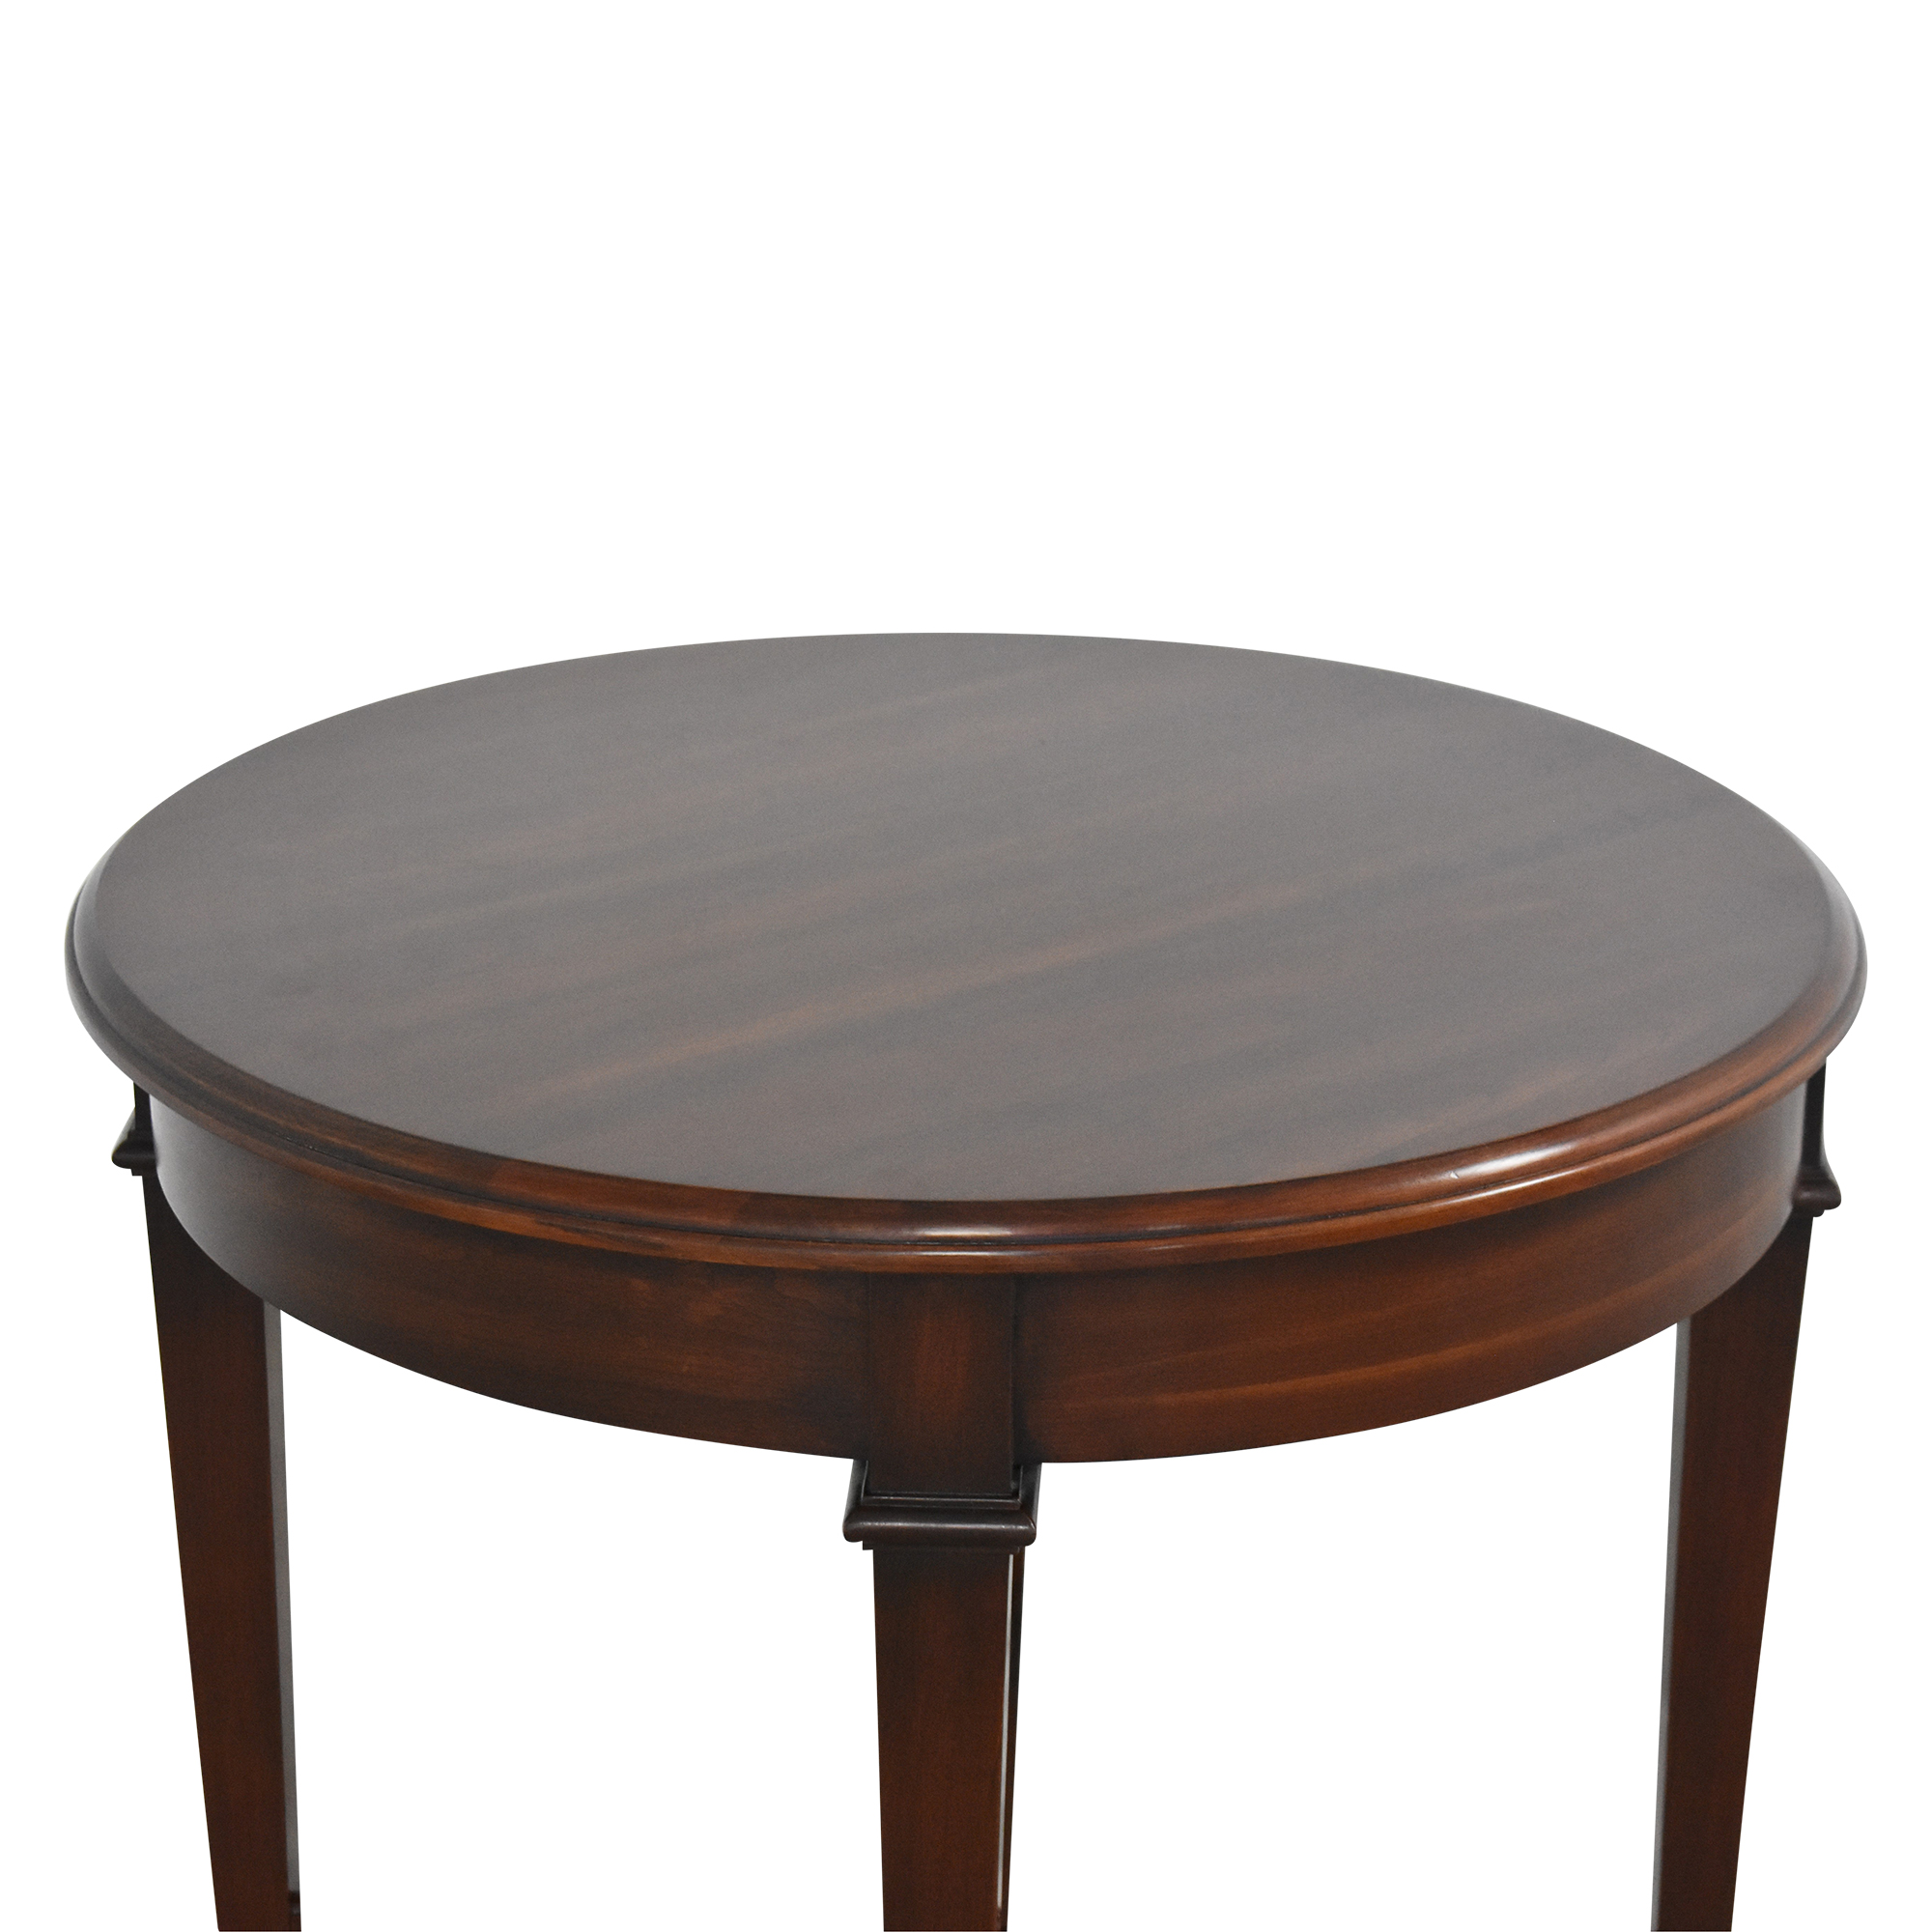 Harden Harden Round End Table on sale